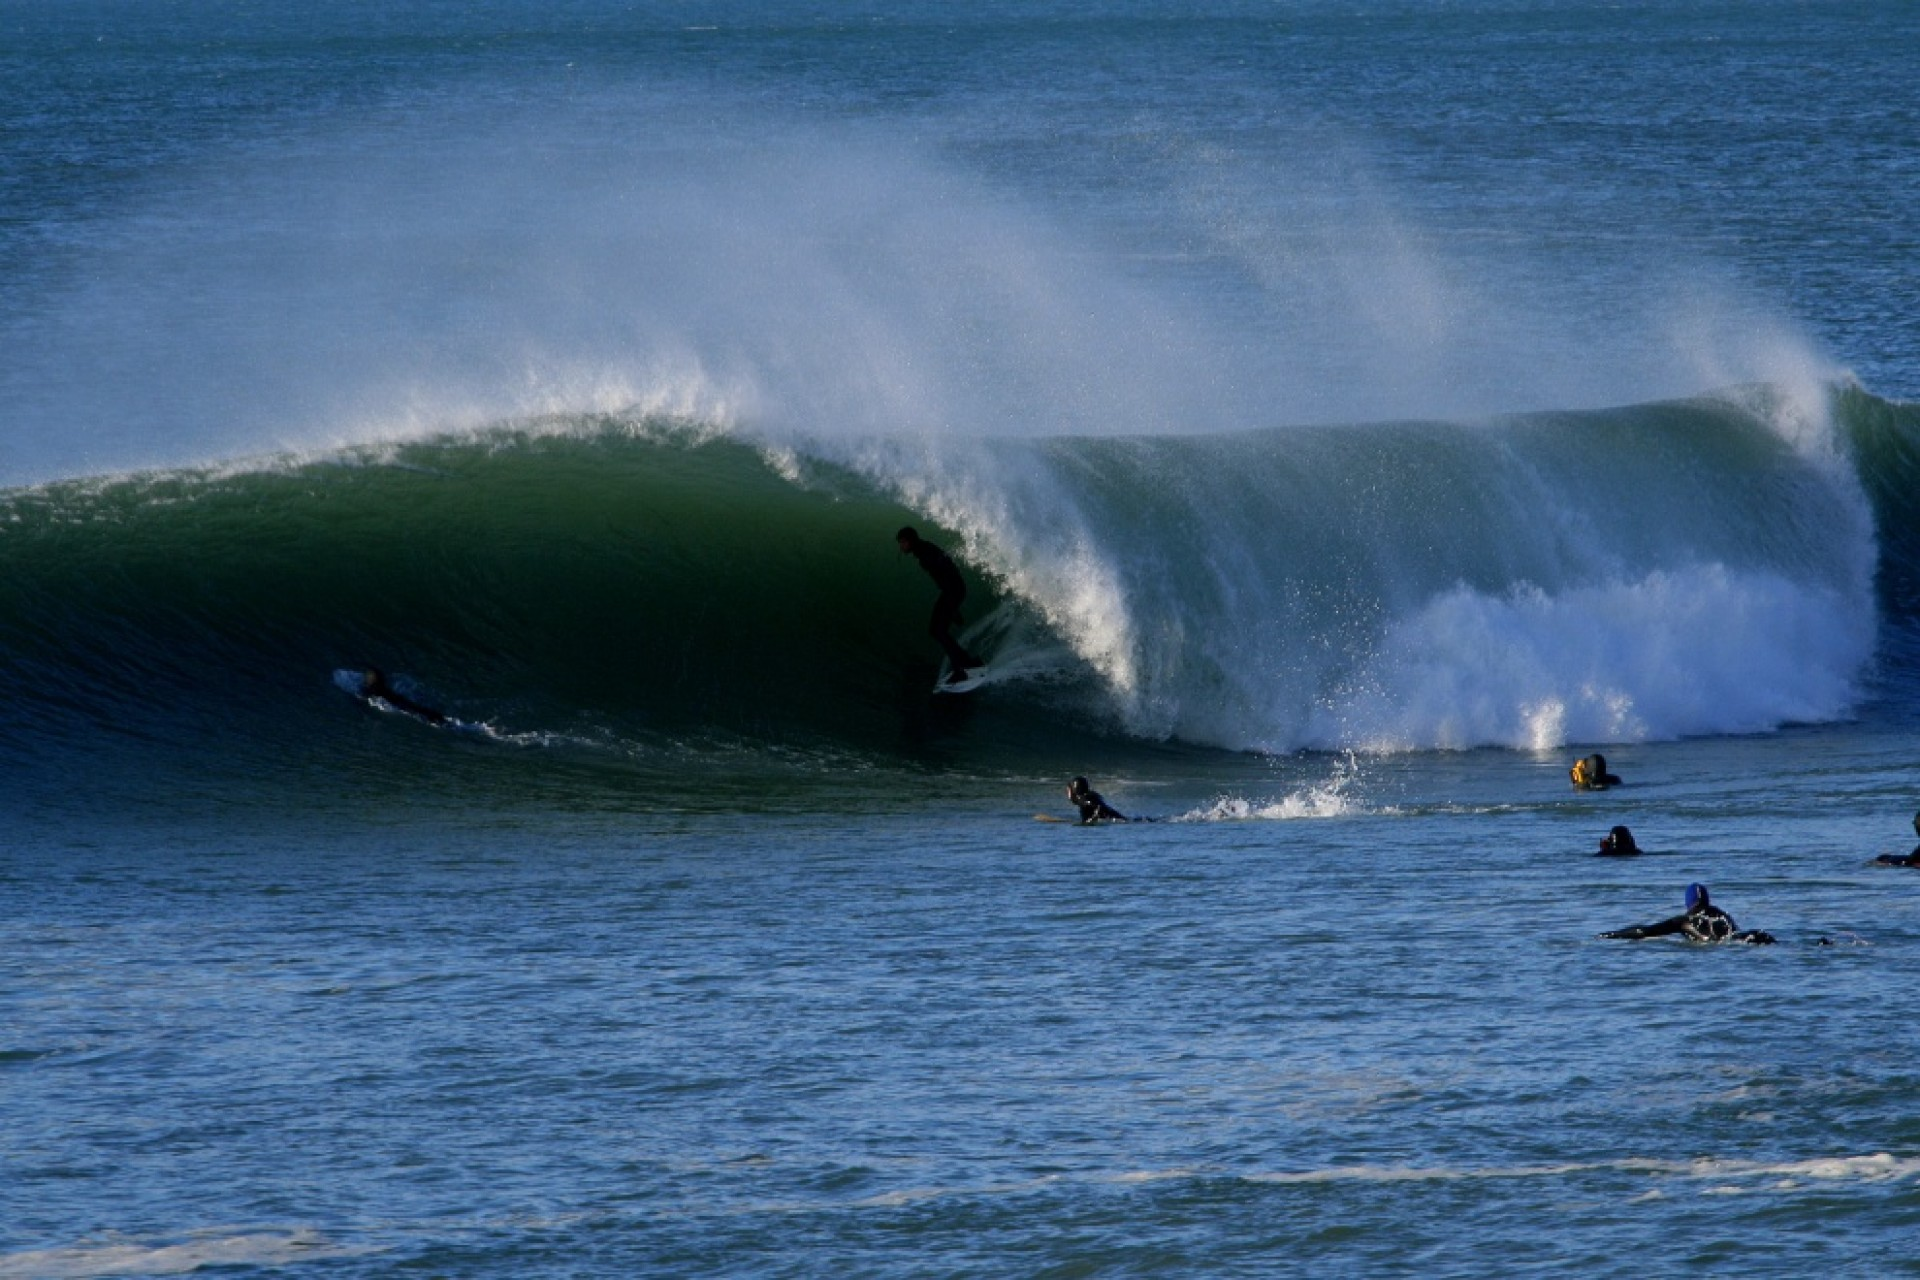 Alex Young's photo of Porthleven